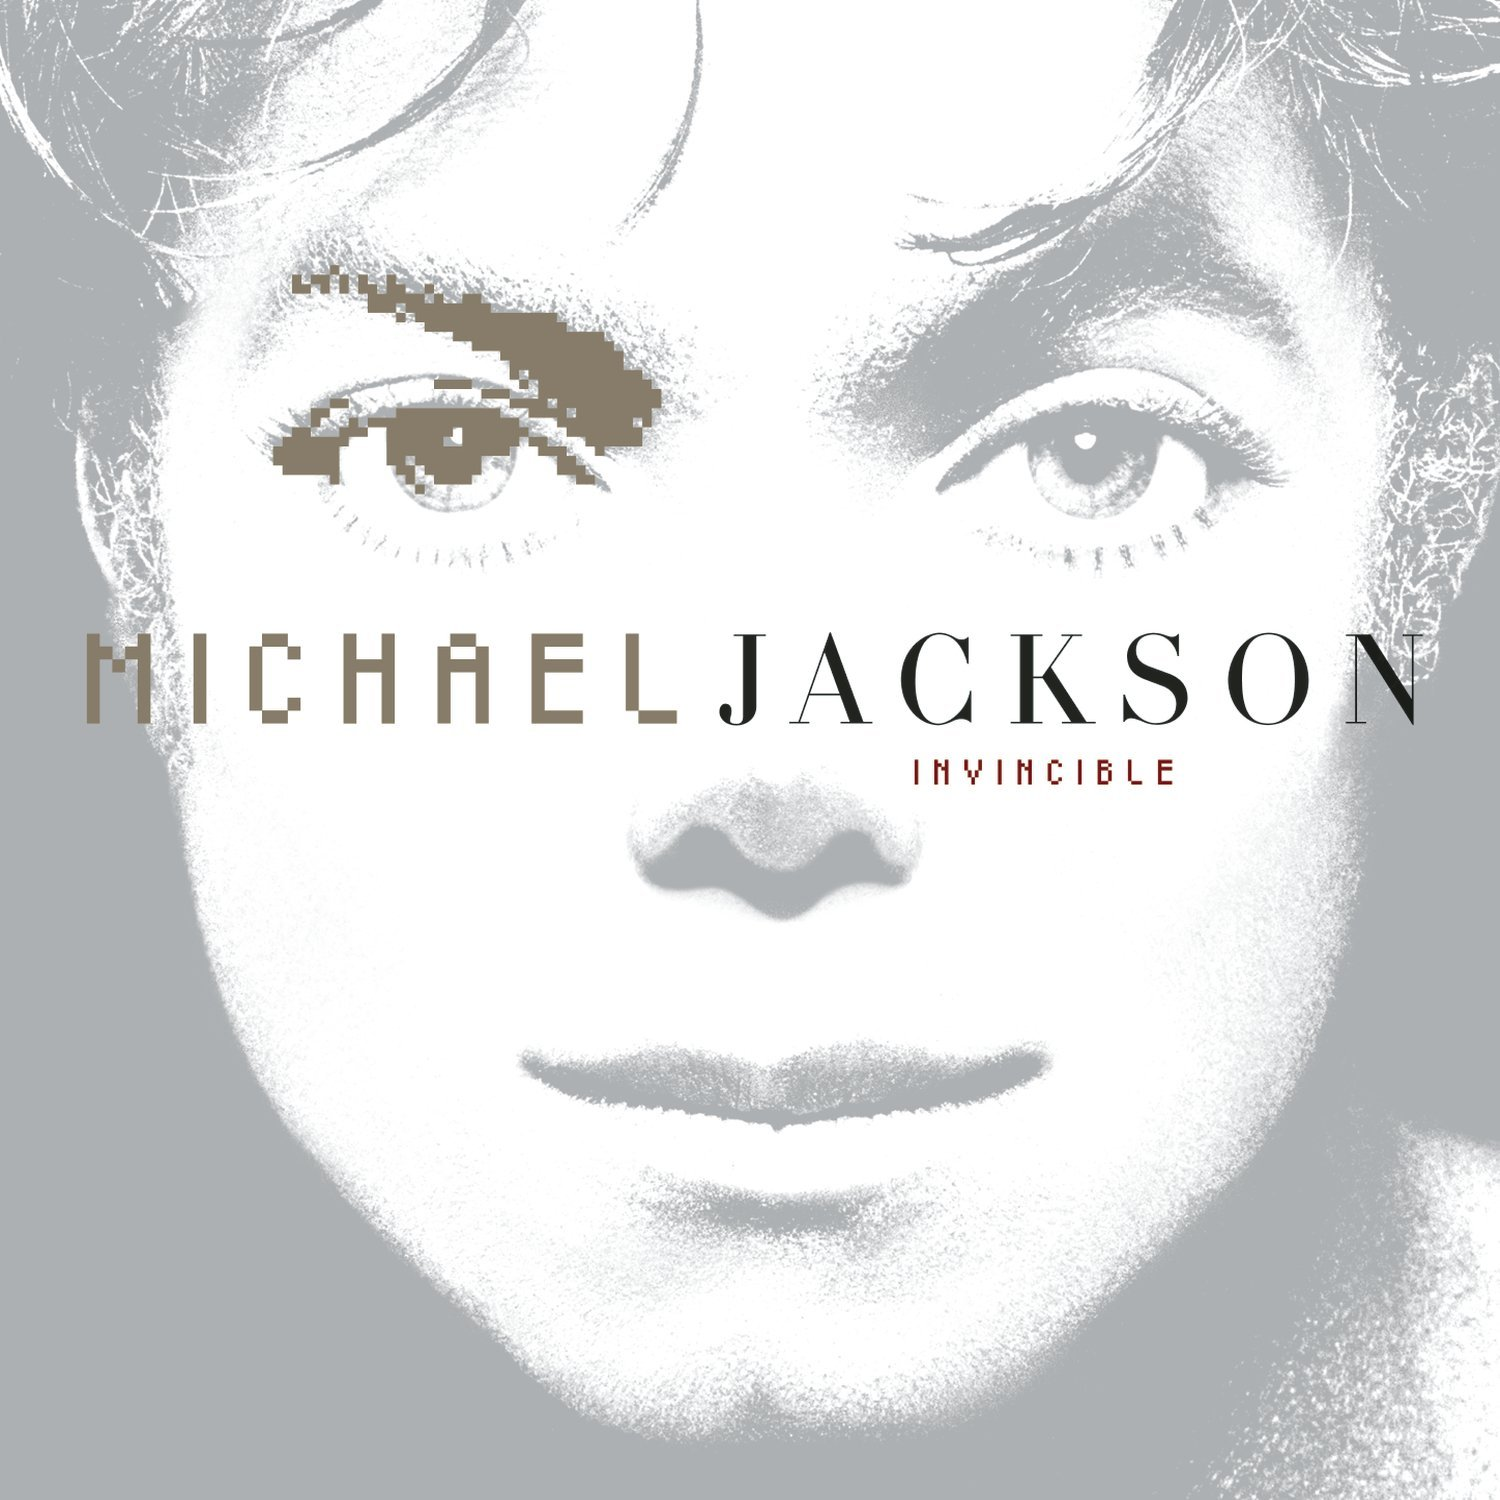 Michael Jackson, Invincible